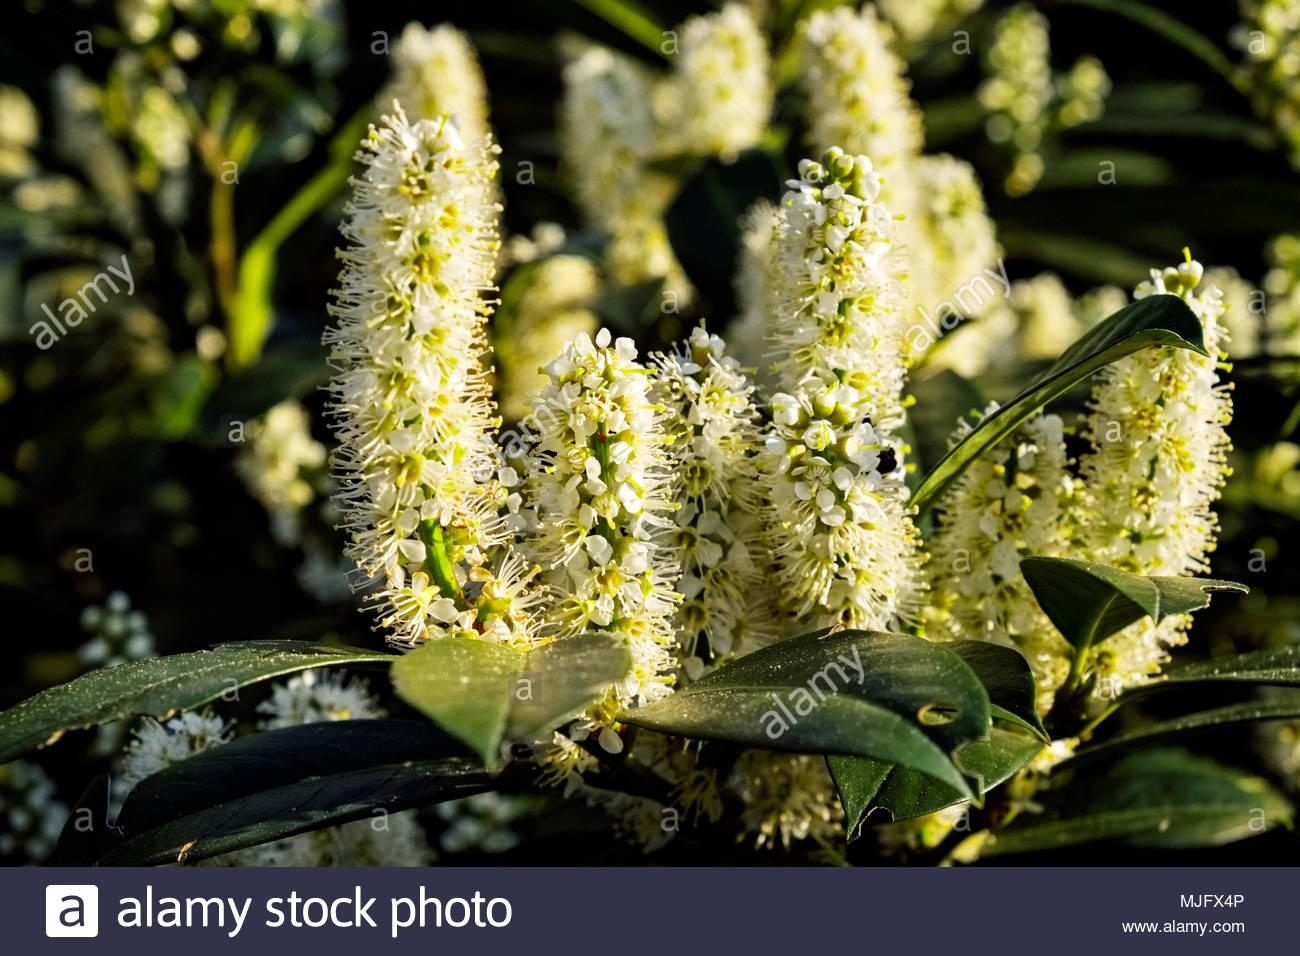 New growth in springtime on Kirschlorbeer, or cherry laurel, Prunus laurocerasus - Stock Image